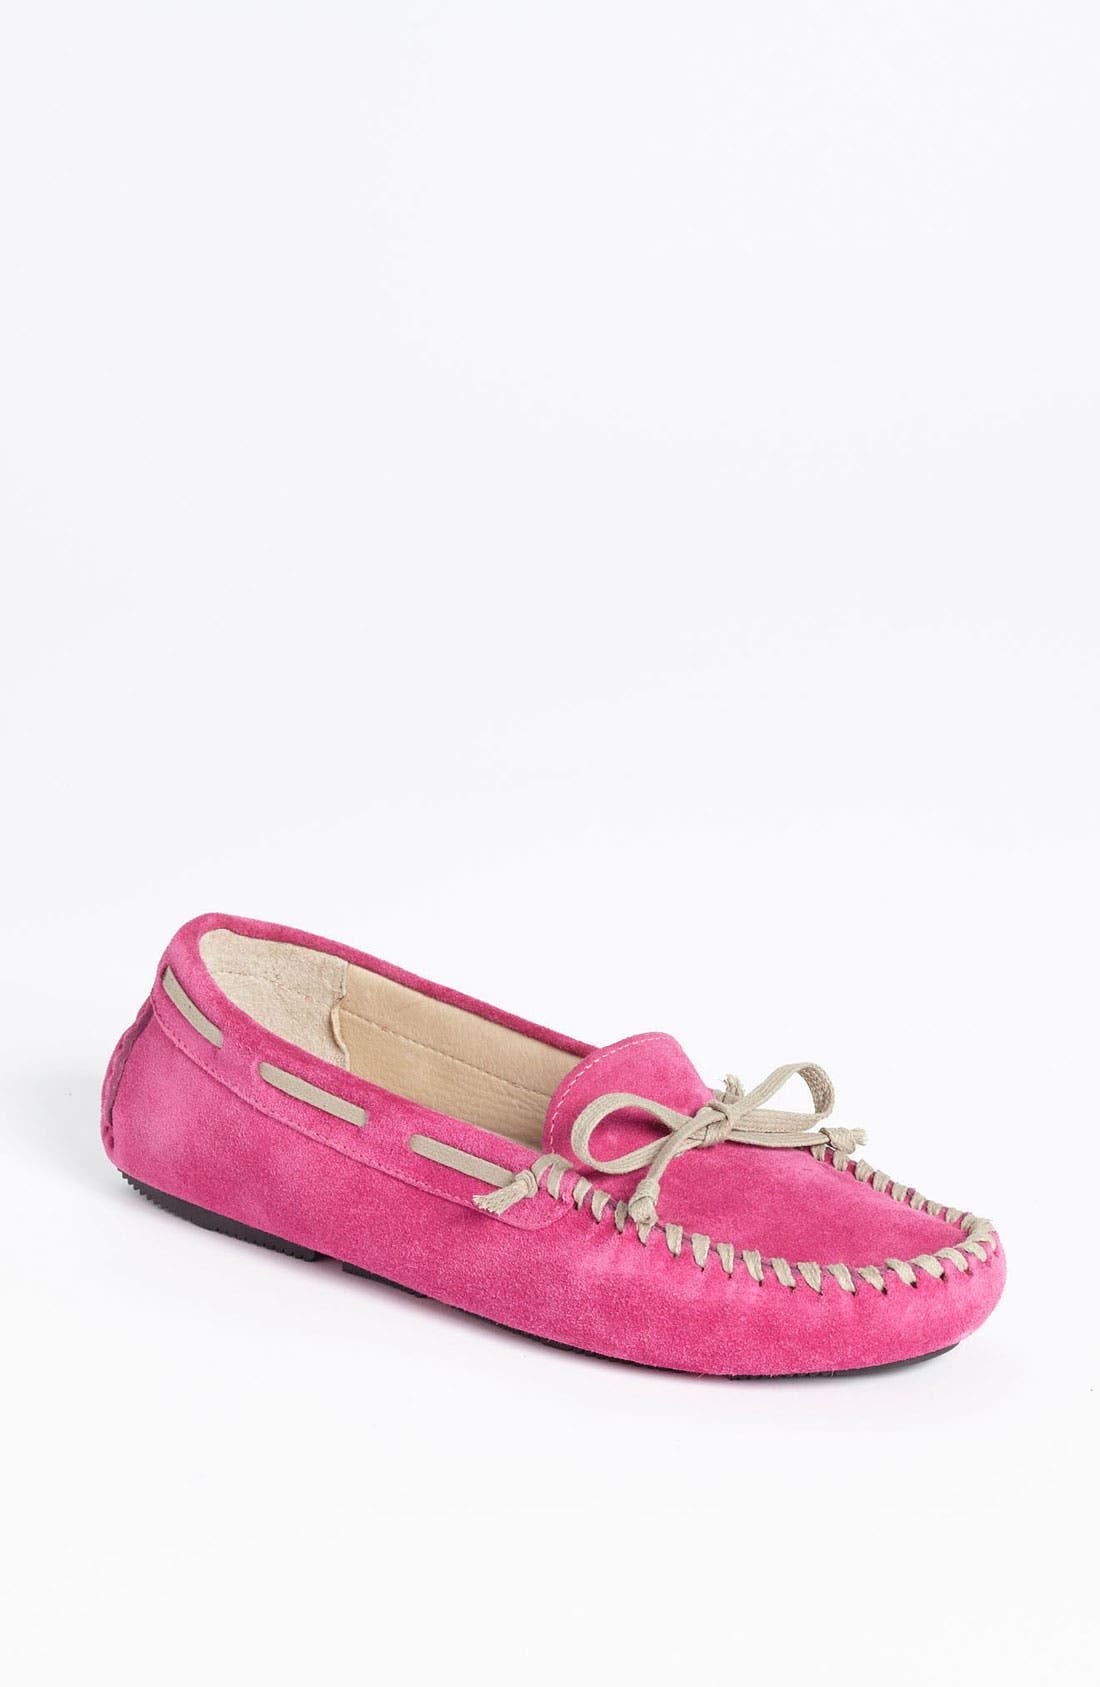 Main Image - Vera Wang Footwear 'Dorian' Loafer